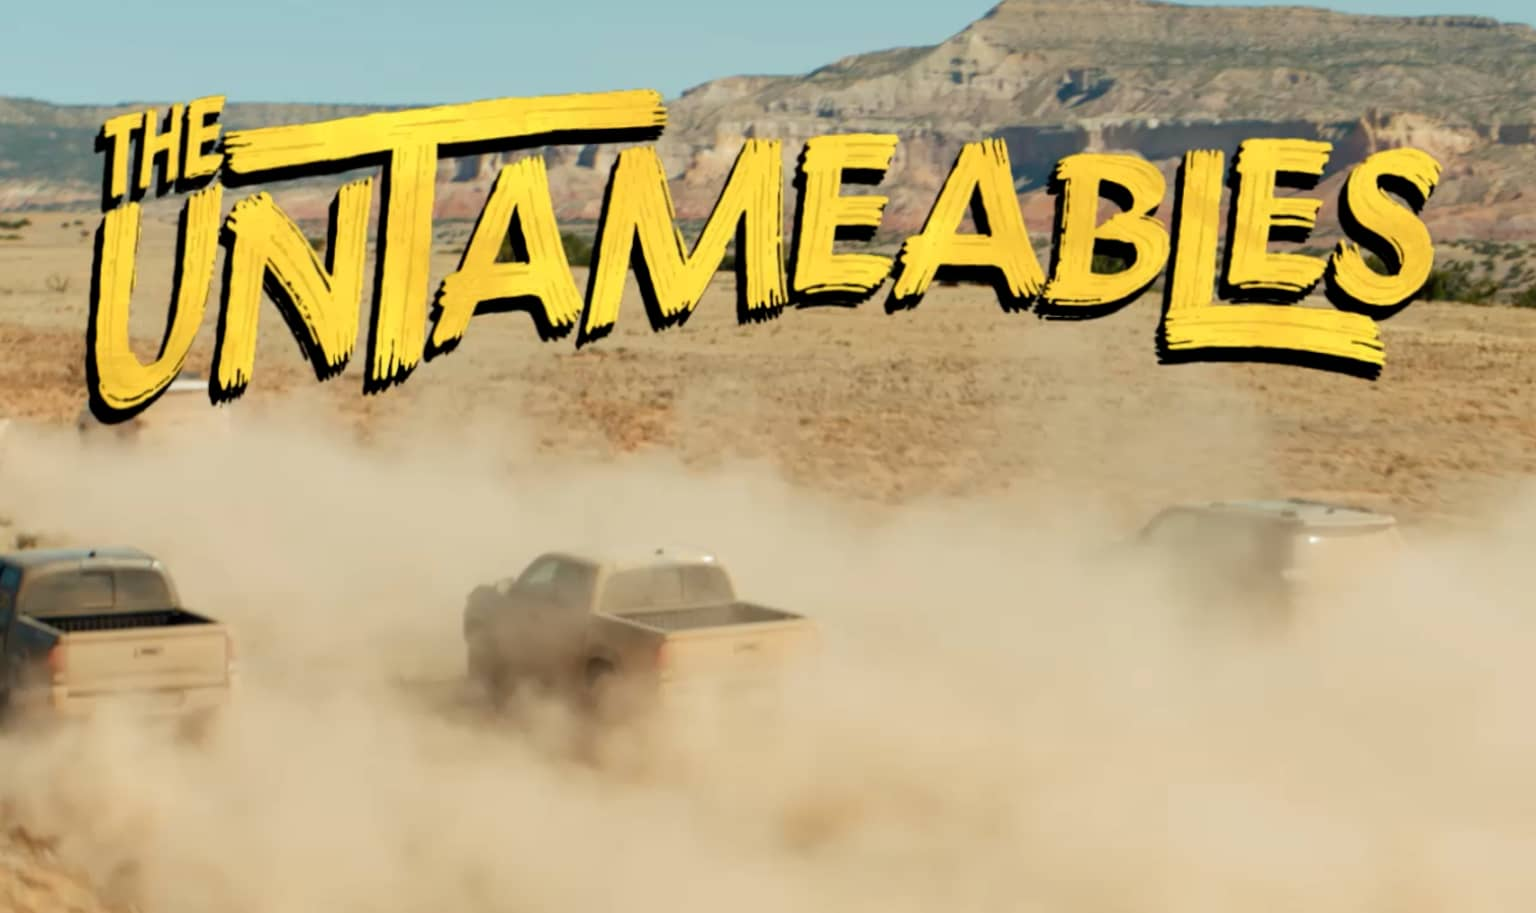 Toyota The Untameables